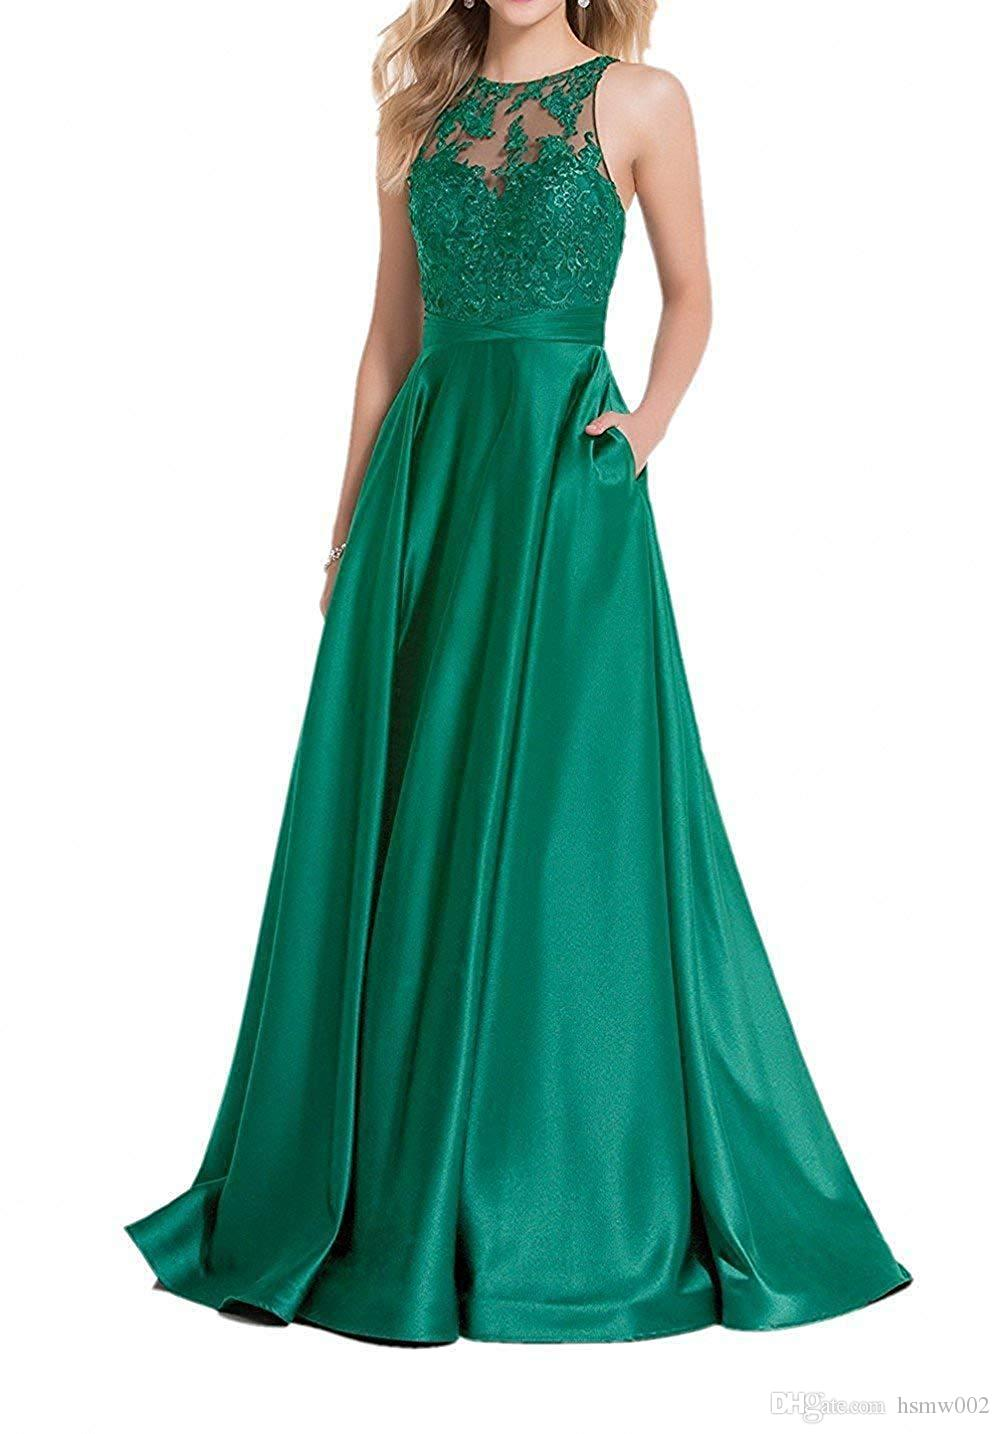 Elegant Lace Appliques Tops Prom Gown Satin A-line Floor Length Formal Evening Dresses with Pockets Custom Made